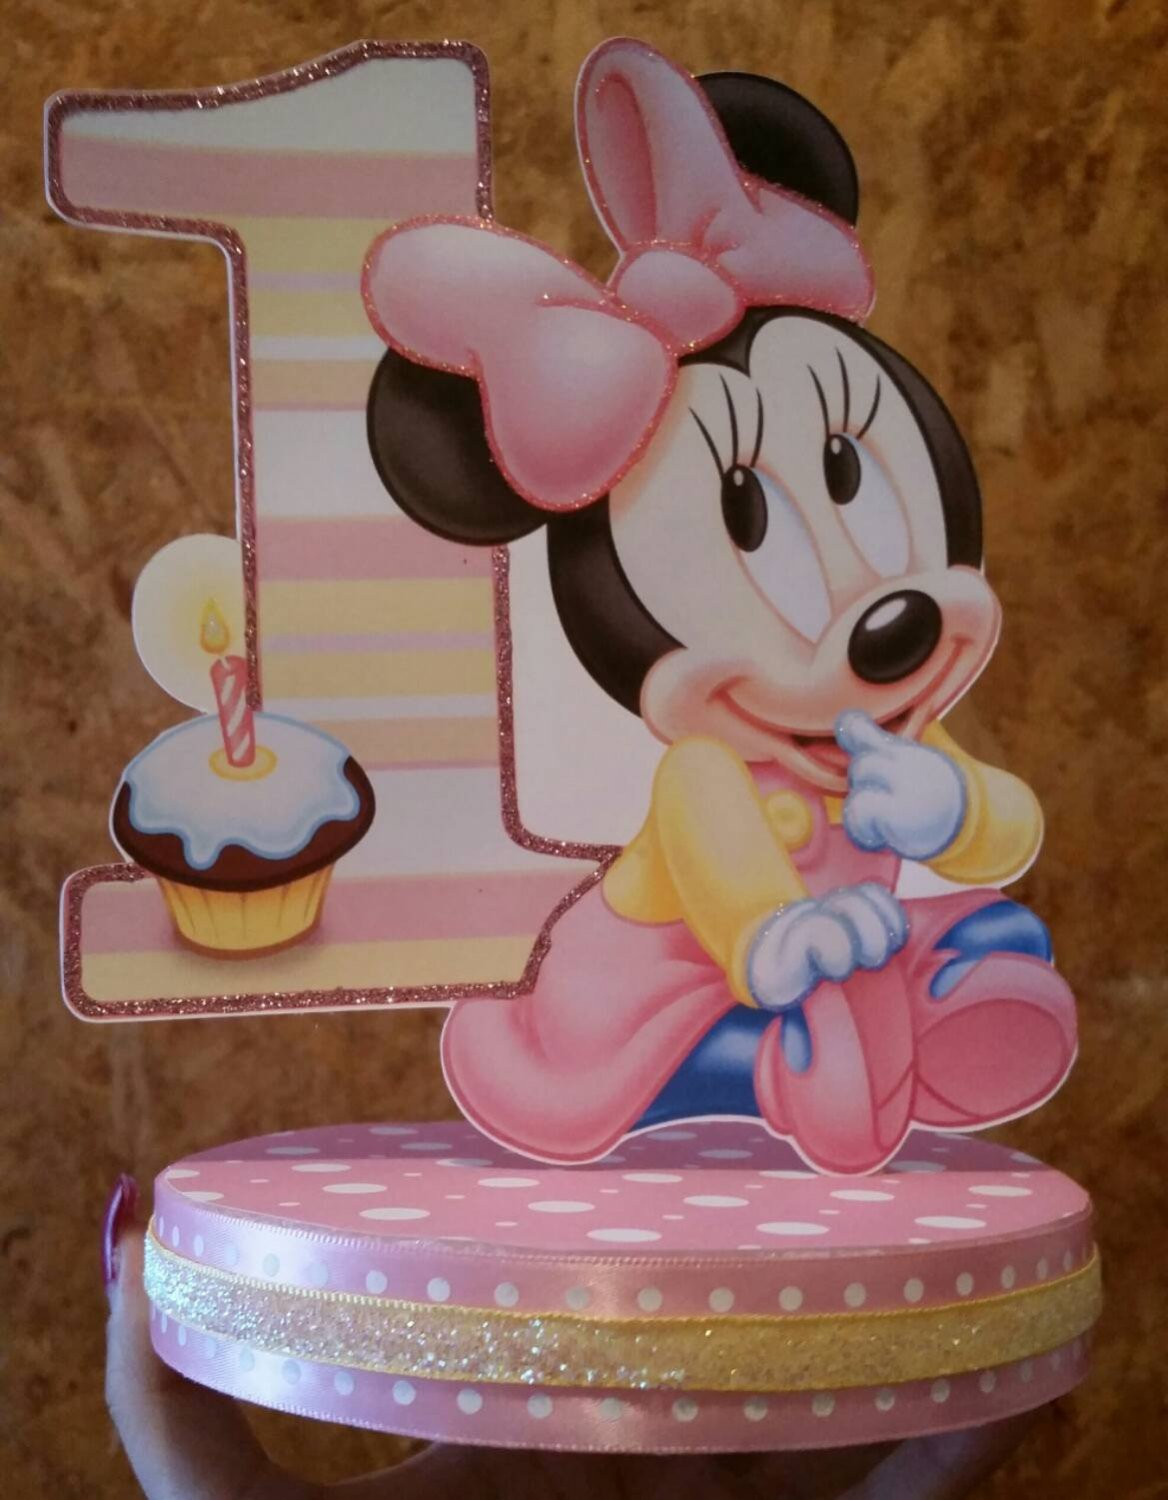 Best ideas about 1st Birthday Cake Topper . Save or Pin Minnie mouse 1st birthday cake topper Now.